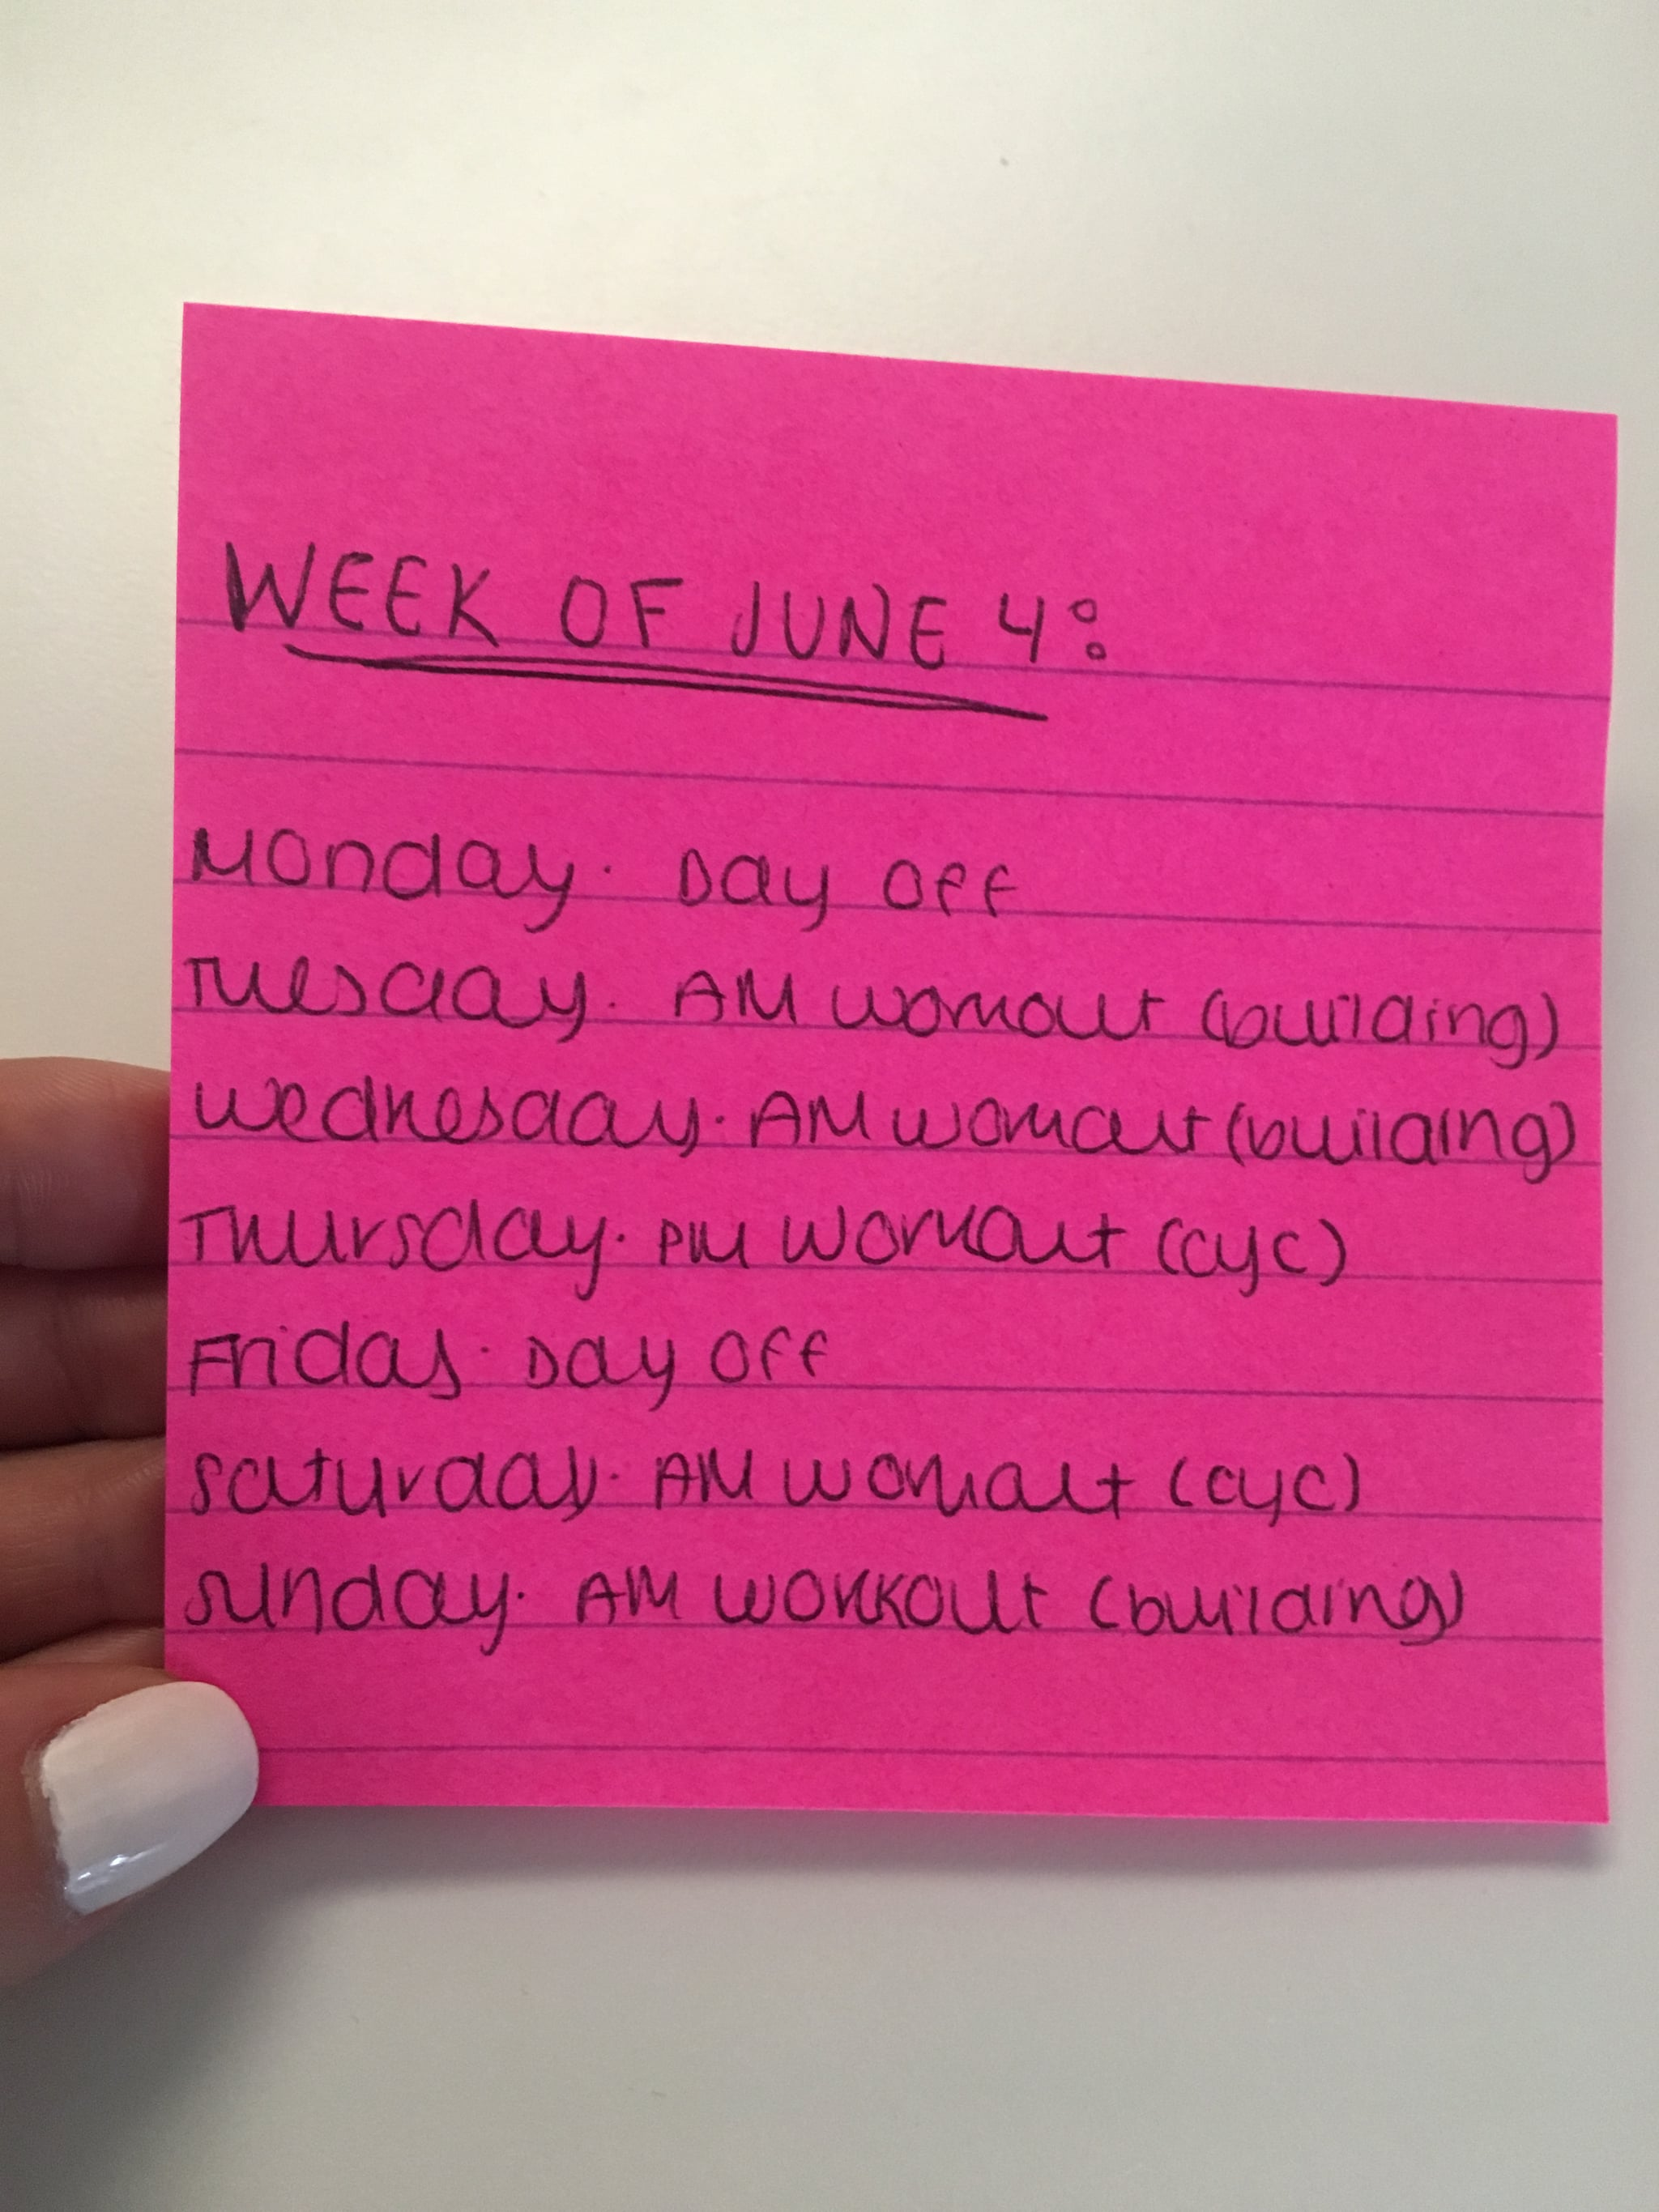 PopsugarFitnessLife HacksPost-It Hack For Planning Weekly WorkoutsThis Post-It Hack Is the Key to Sticking to Your Weekly Workout Plan, and It's so SimpleJune 6, 2018 by Perri Konecky0 SharesChat with us on Facebook Messenger. Learn what's trending across POPSUGAR.Source: POPSUGAR Photography / Kat BorchartSome people plan for the week ahead by meal prepping every Sunday, I plan for the week ahead by organizing just about every other aspect of the next seven days. I'm talking my workouts, when I'm washing my hair (correlating with said workout plan), my evening plans or work events, and more, and it all goes down on one little Post-It square. If you're struggling to stick to a workout regimen or are looking for a structured way to bring a little more physical activity into your life, you don't need any complicated apps or some long-winded workout plan, you need a pen, paper, and some good ol' fashioned willpower.Every Sunday, I take a look at my calendar where I have my dinner dates and work events, and I try - 웹